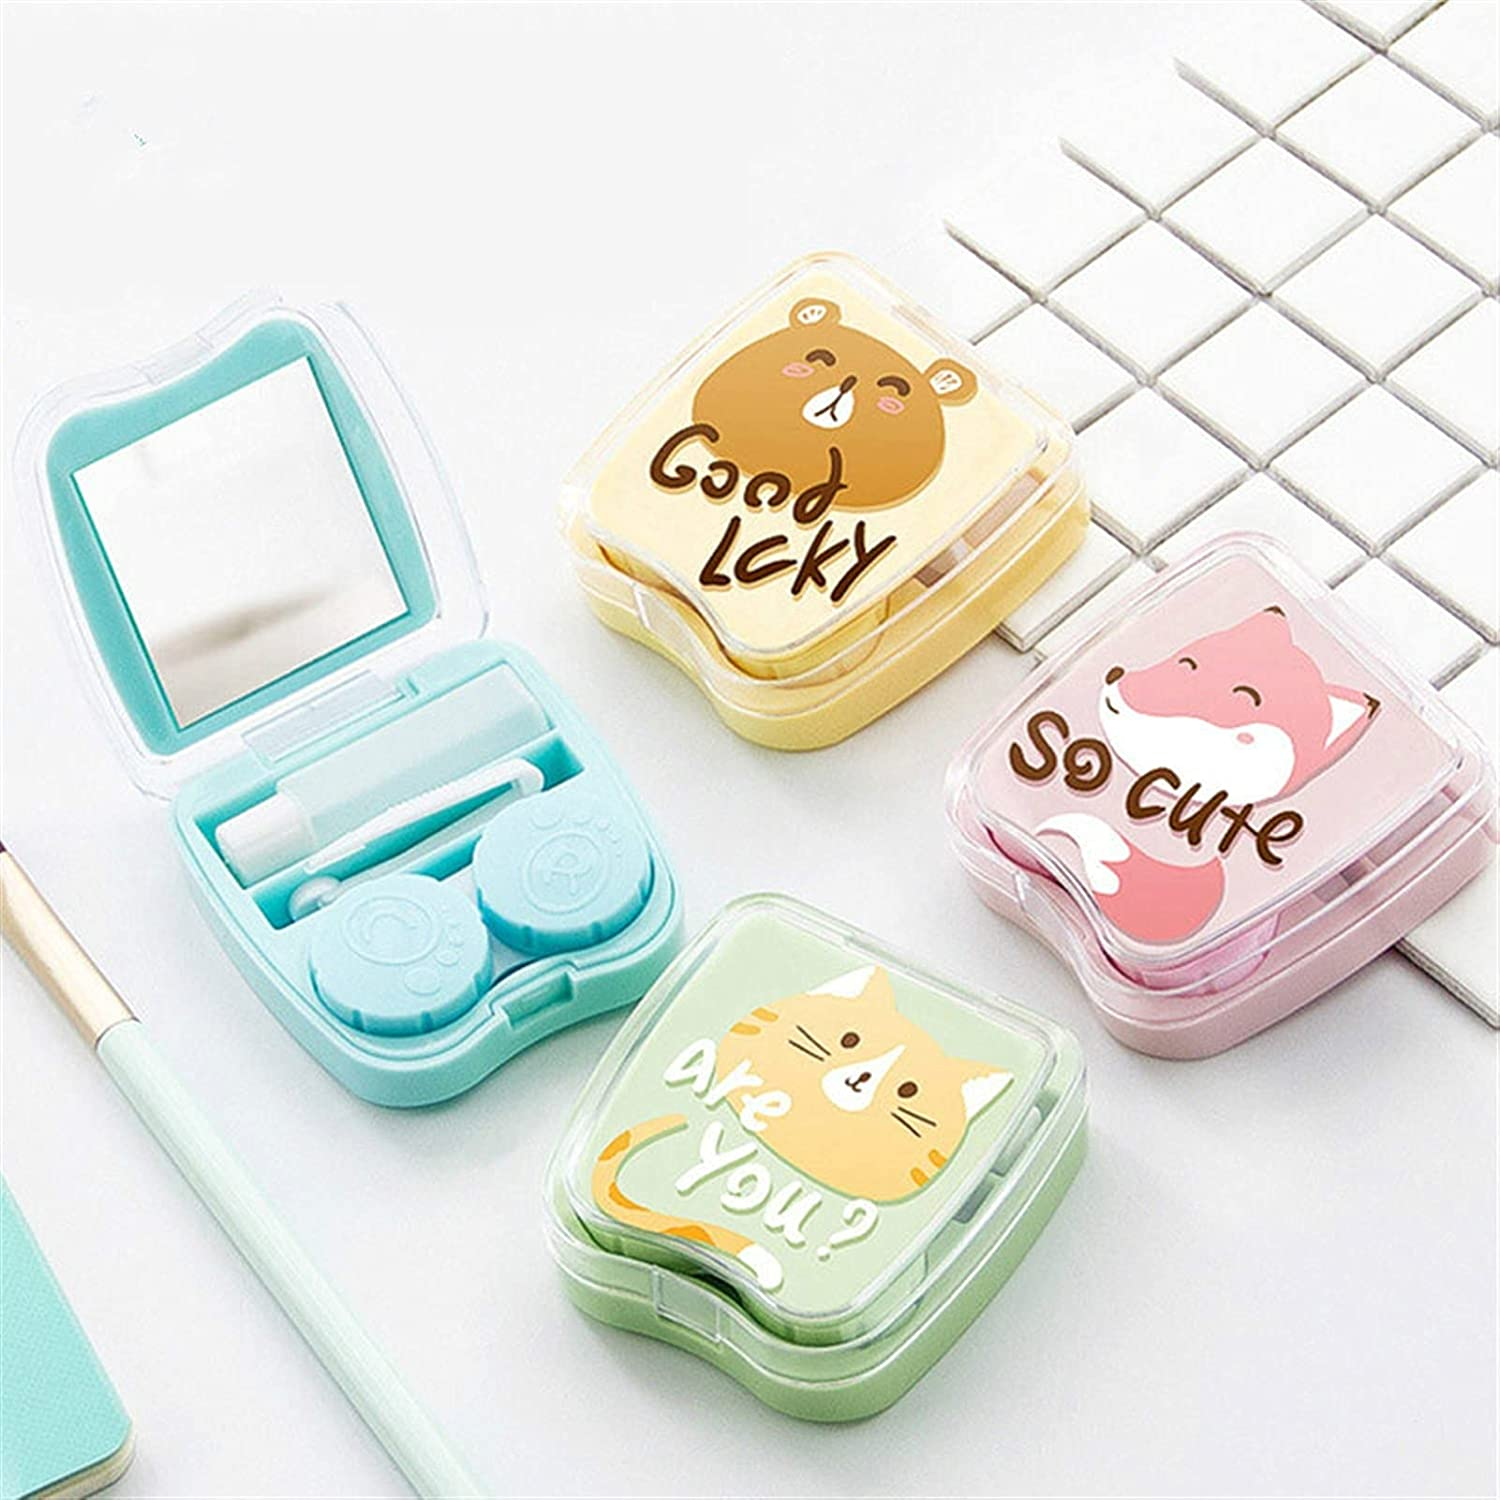 LUBINGT Contact Lens Case Mirror Cartoon Courier shipping free shipping Cases 5% OFF with